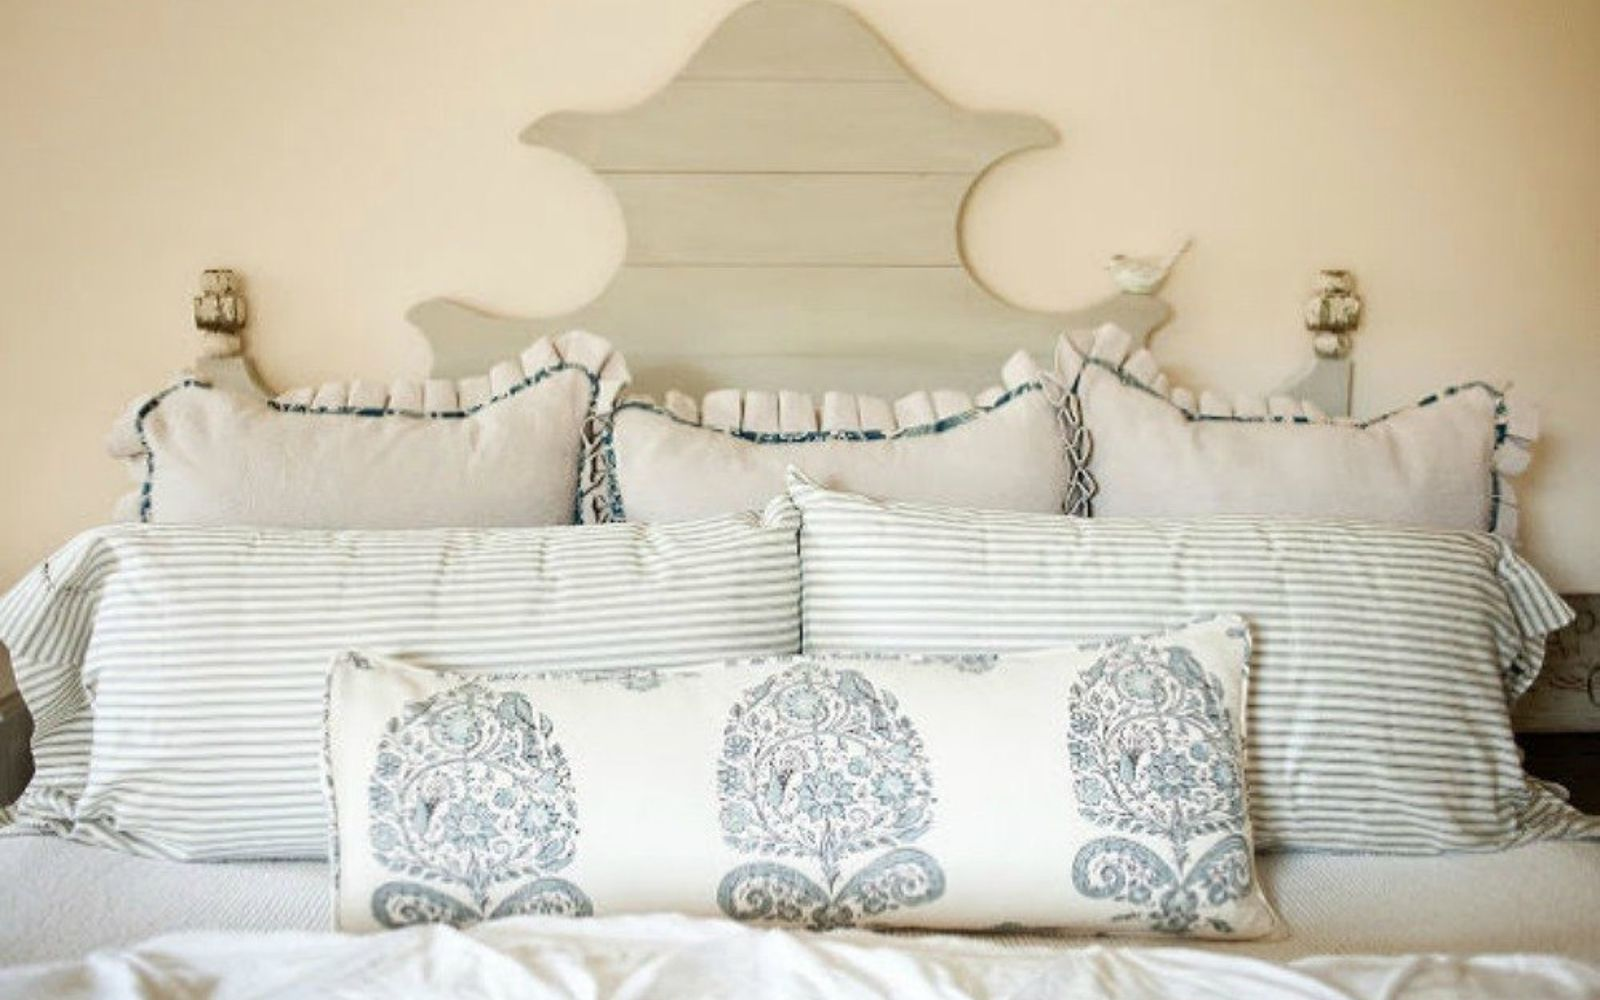 s these are the diy headboard ideas you ve been dreaming of, This Ballard inspired beauty